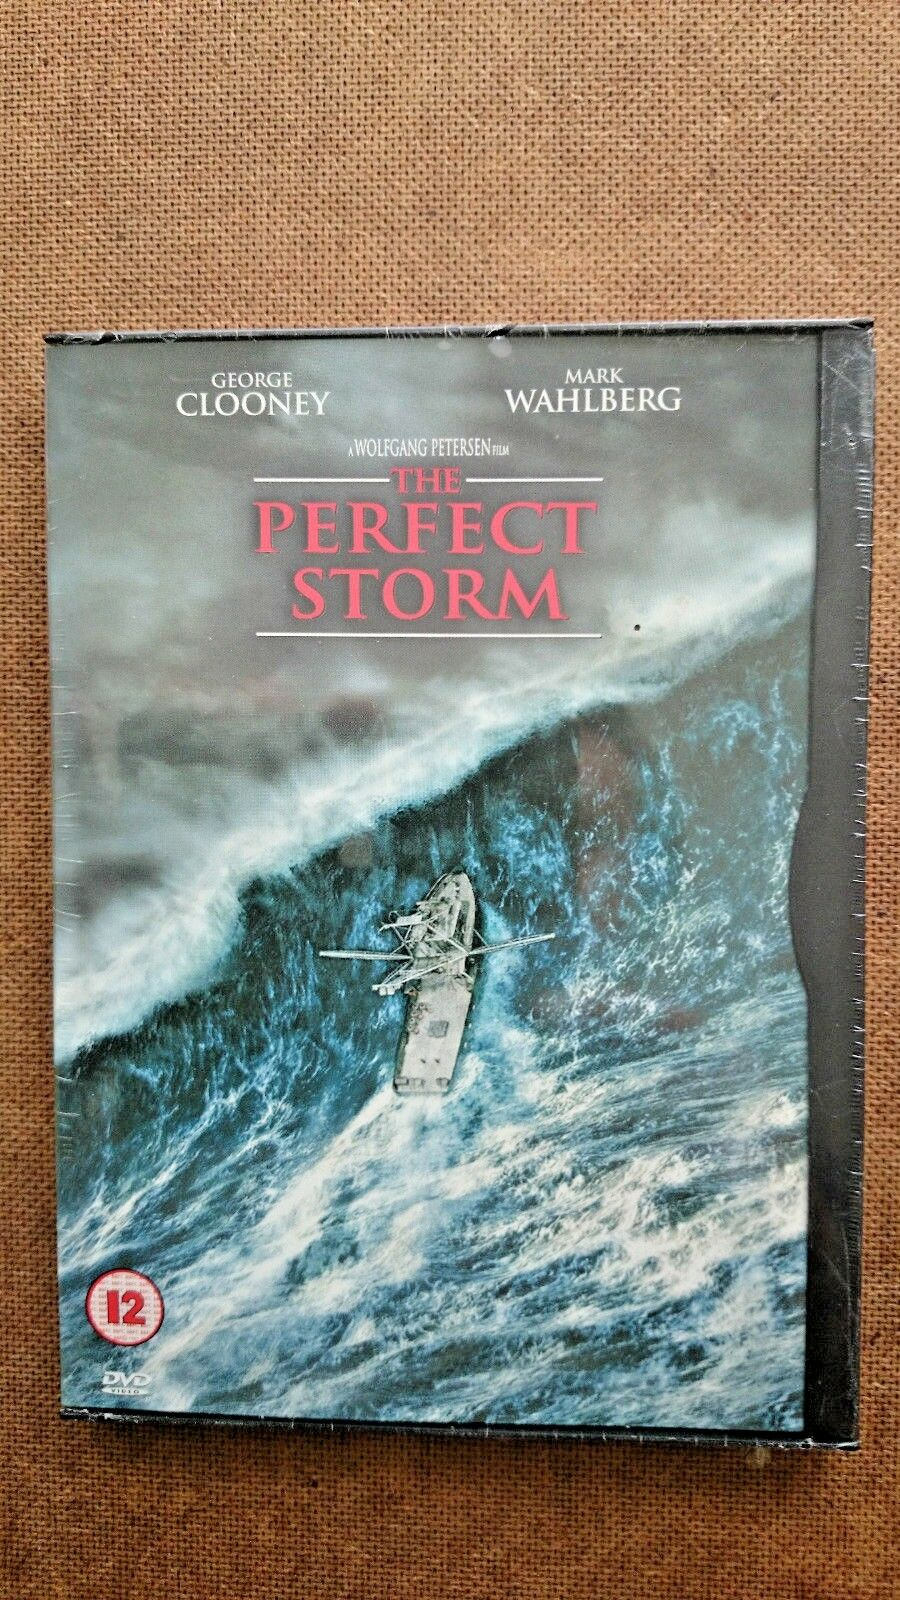 The Perfect Storm (DVD, 2000) - NEW are SEALED - Black Clip Design Case